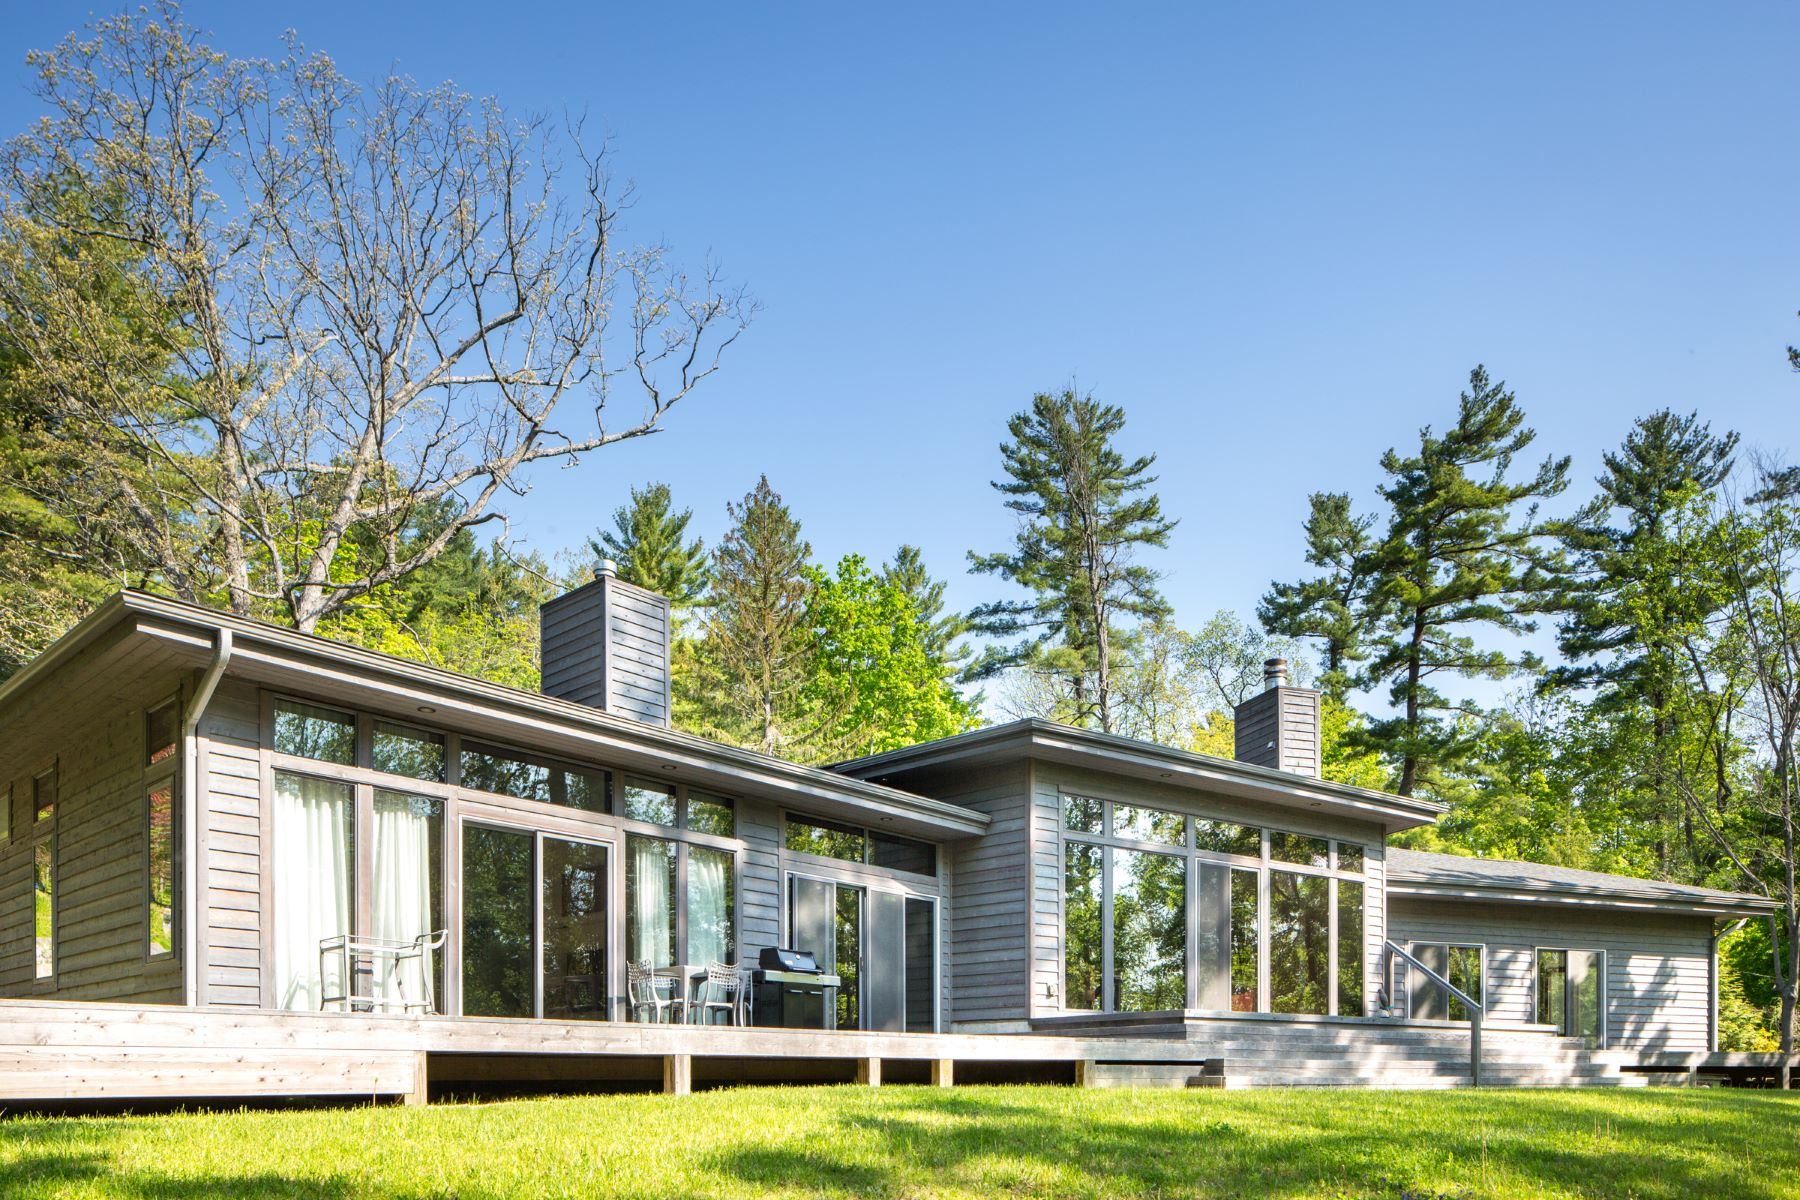 단독 가정 주택 용 매매 에 Chic, Custom-designed Contemporary on The Hill 15 Berkshire Heights Rd, Great Barrington, 매사추세츠, 01230 미국